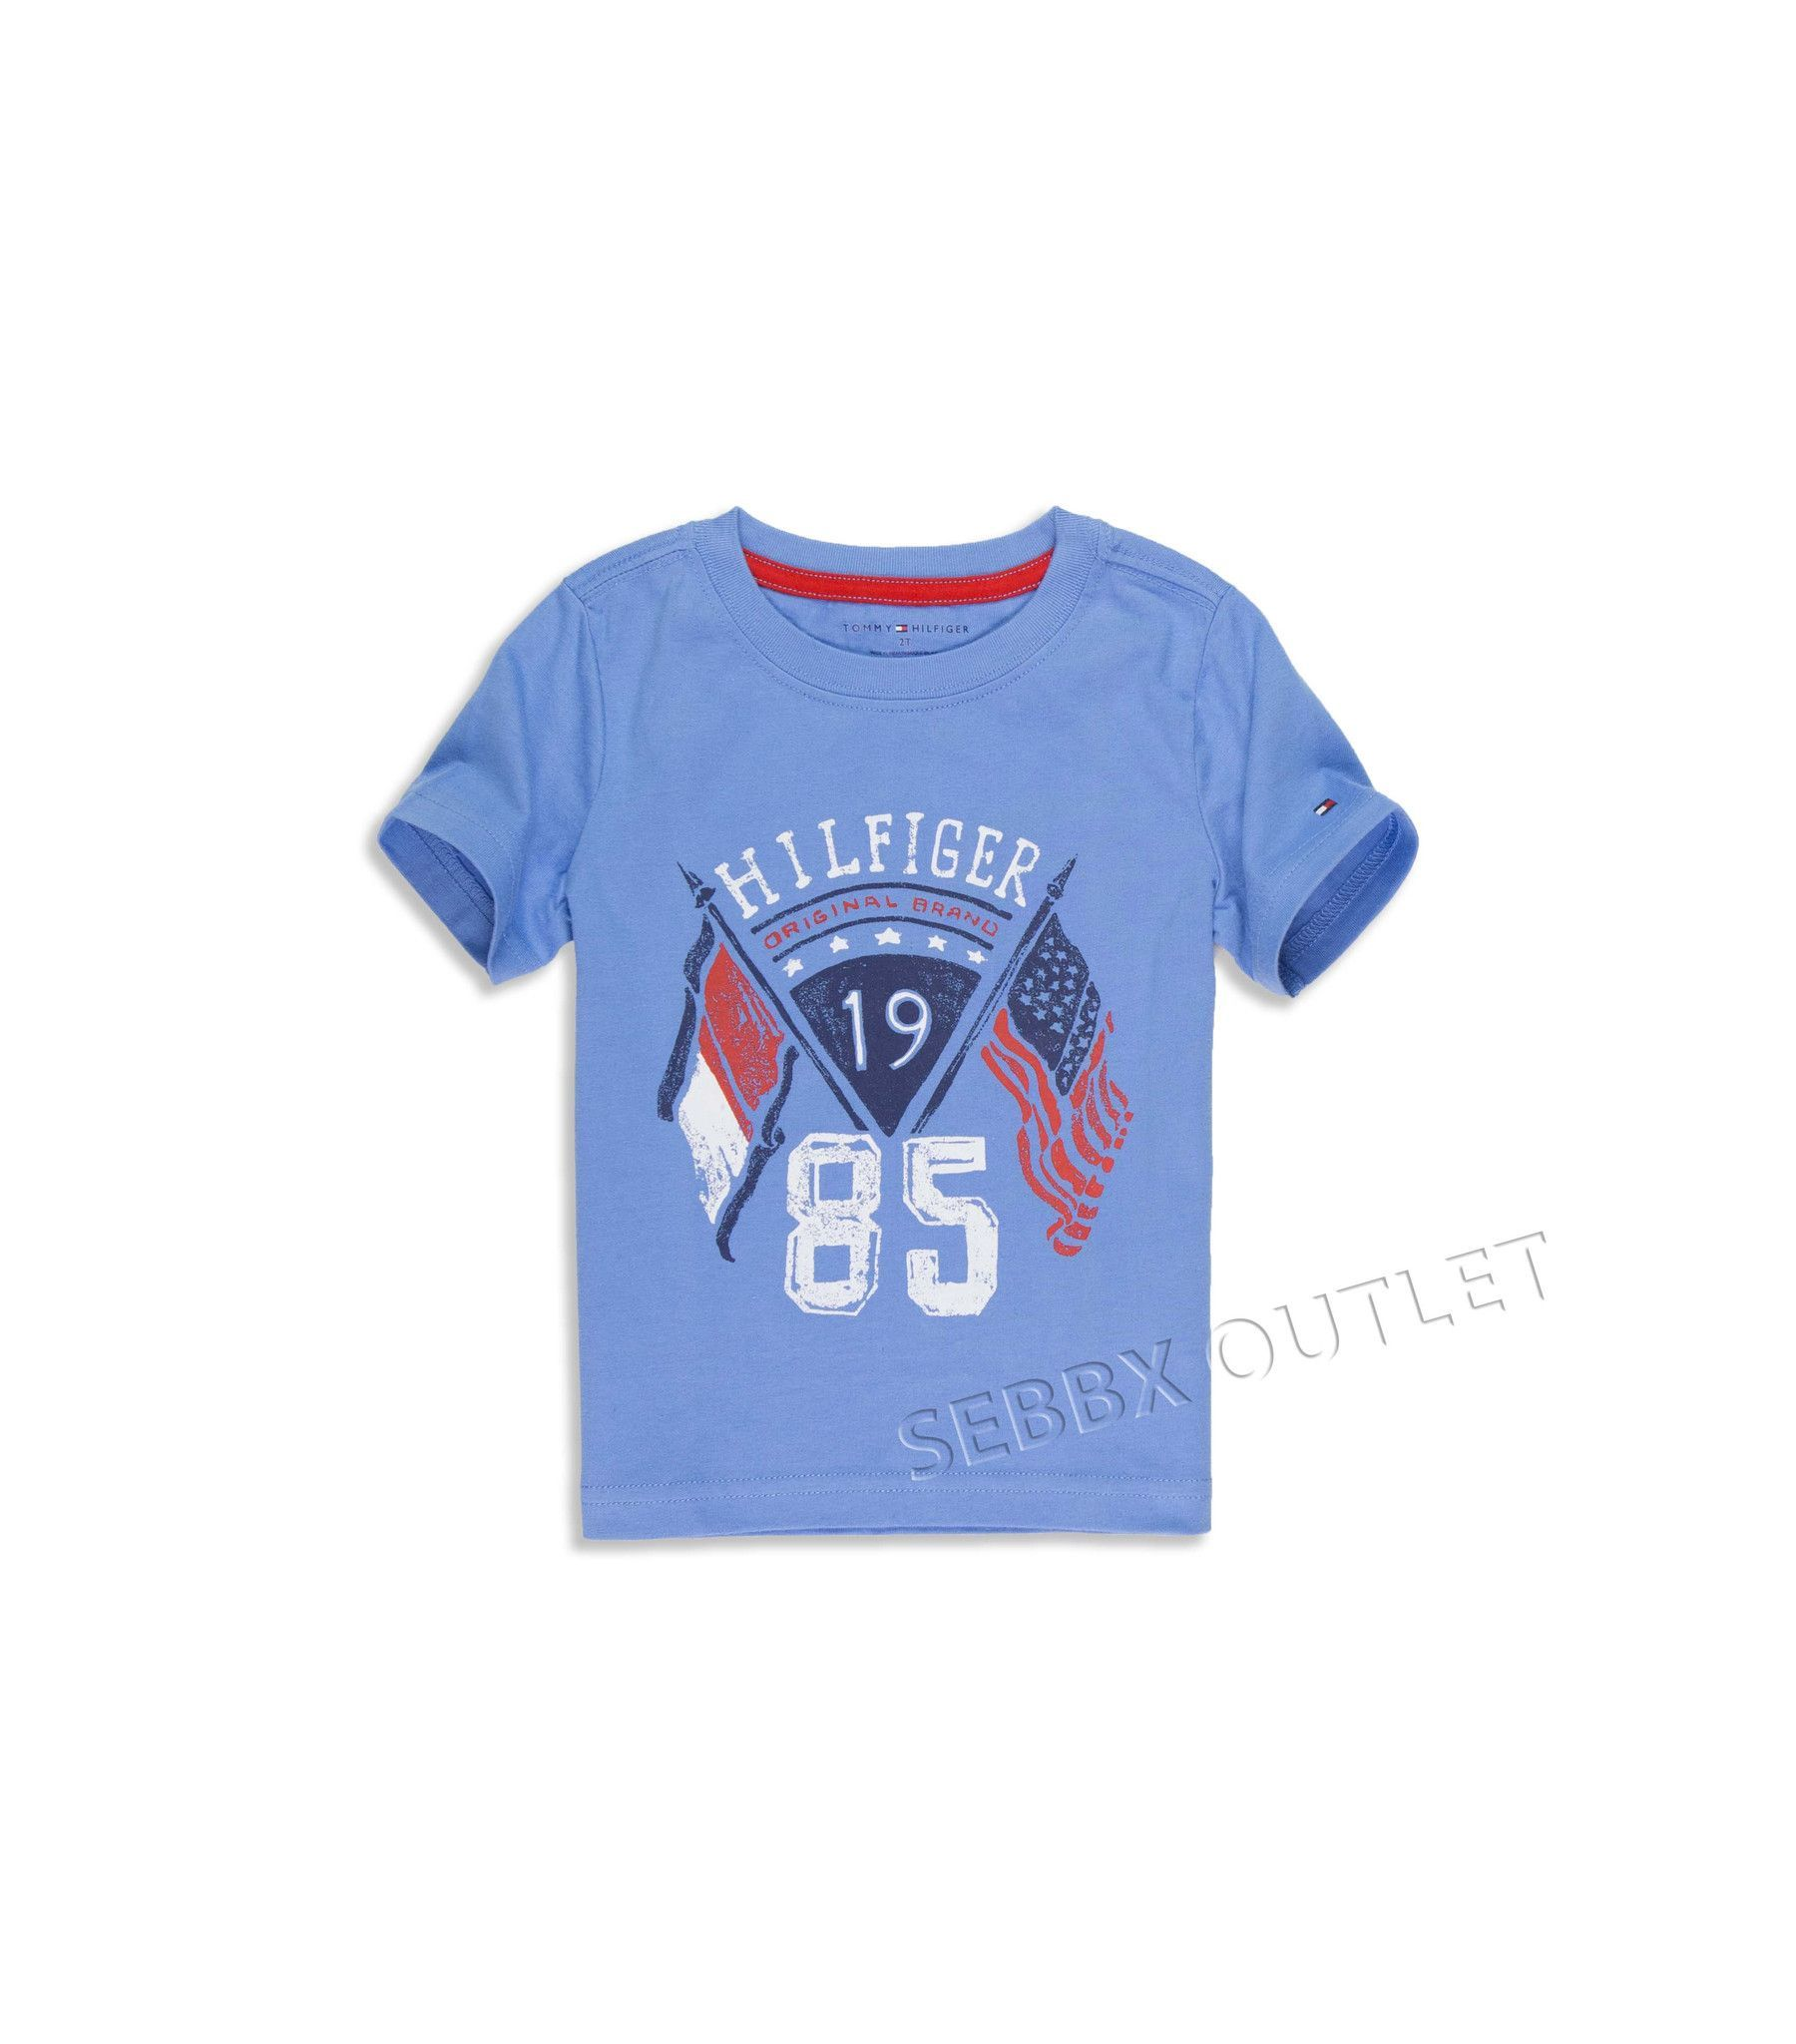 Tommy Hilfiger T Shirt Tee Blue Graphic T